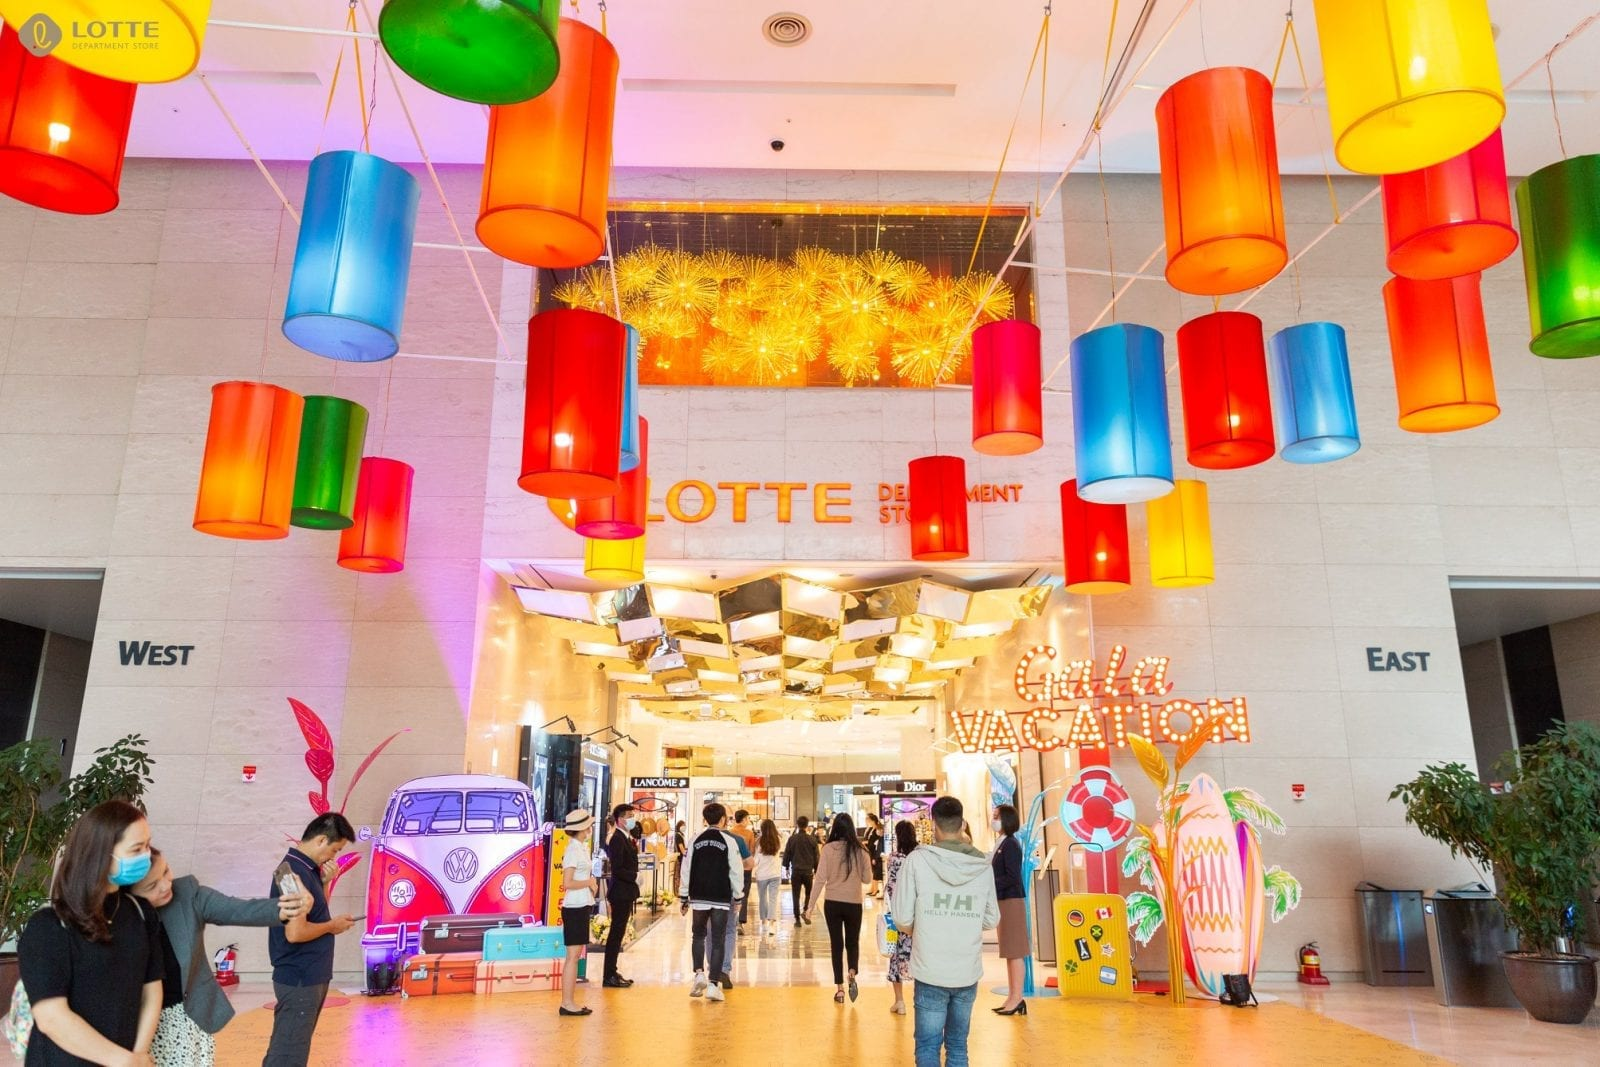 Image of the Lotte department store in Hanoi, Vietnam